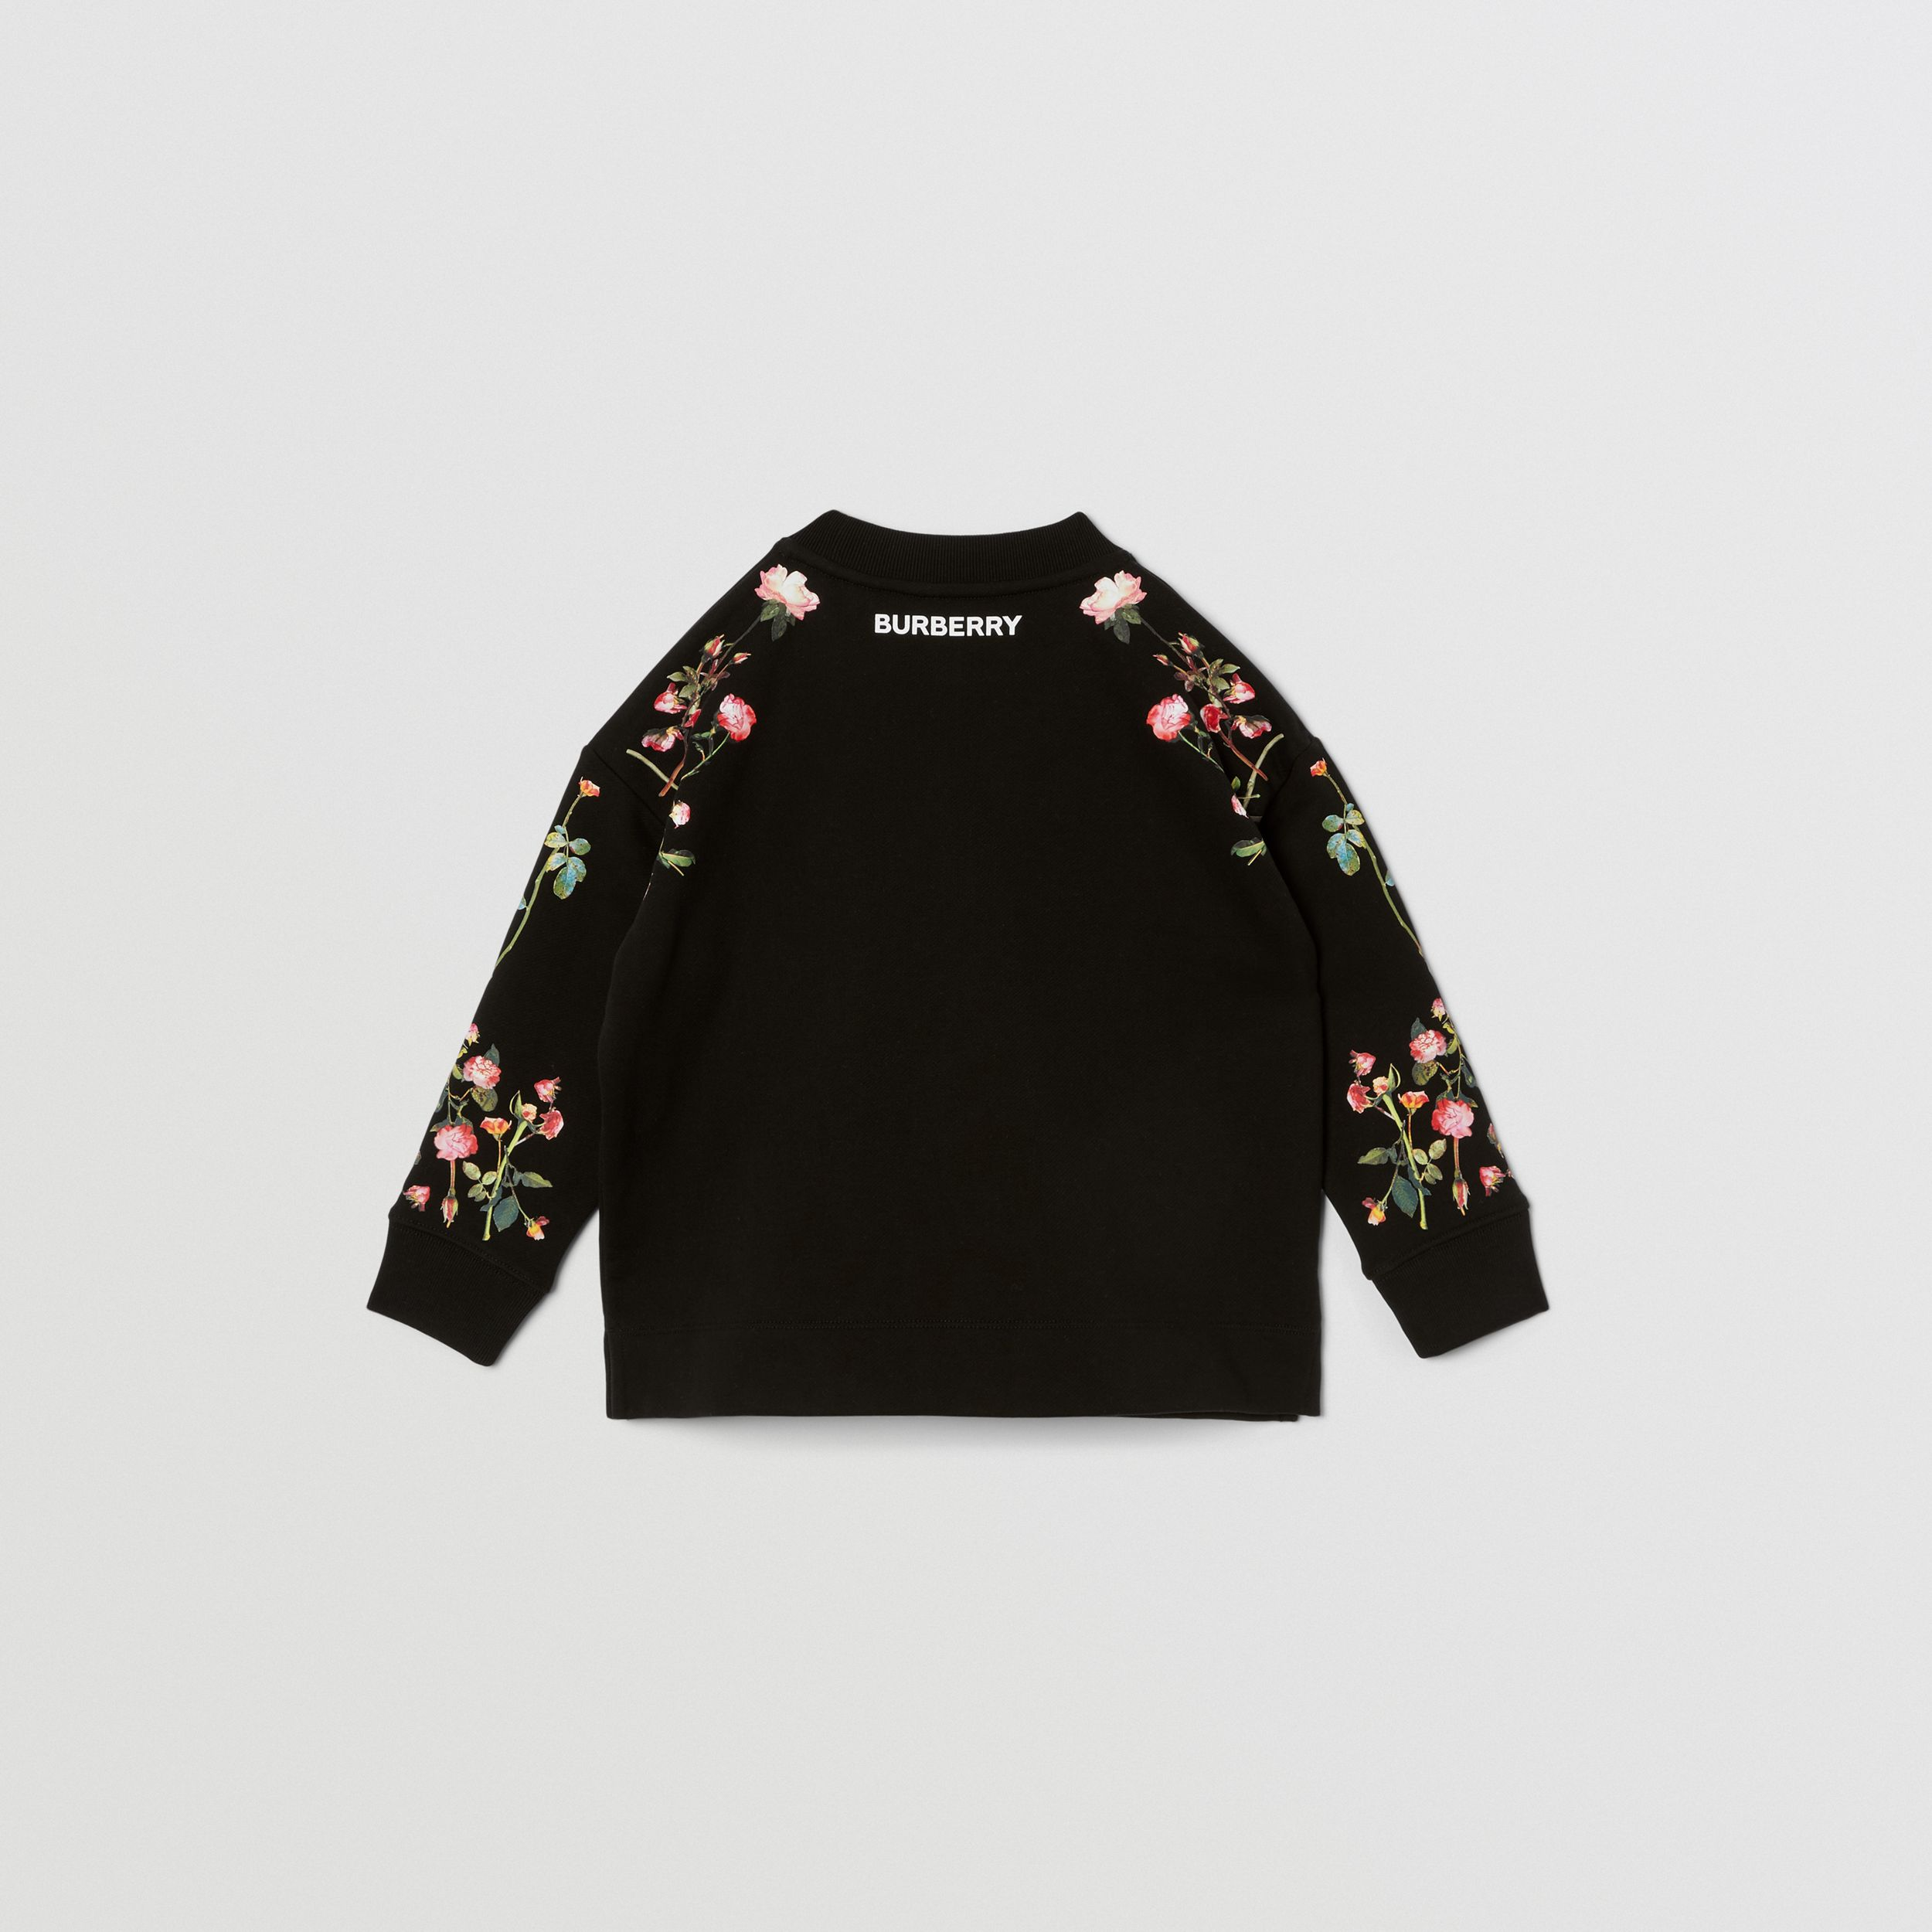 Montage Print Cotton Sweatshirt in Black | Burberry - 4